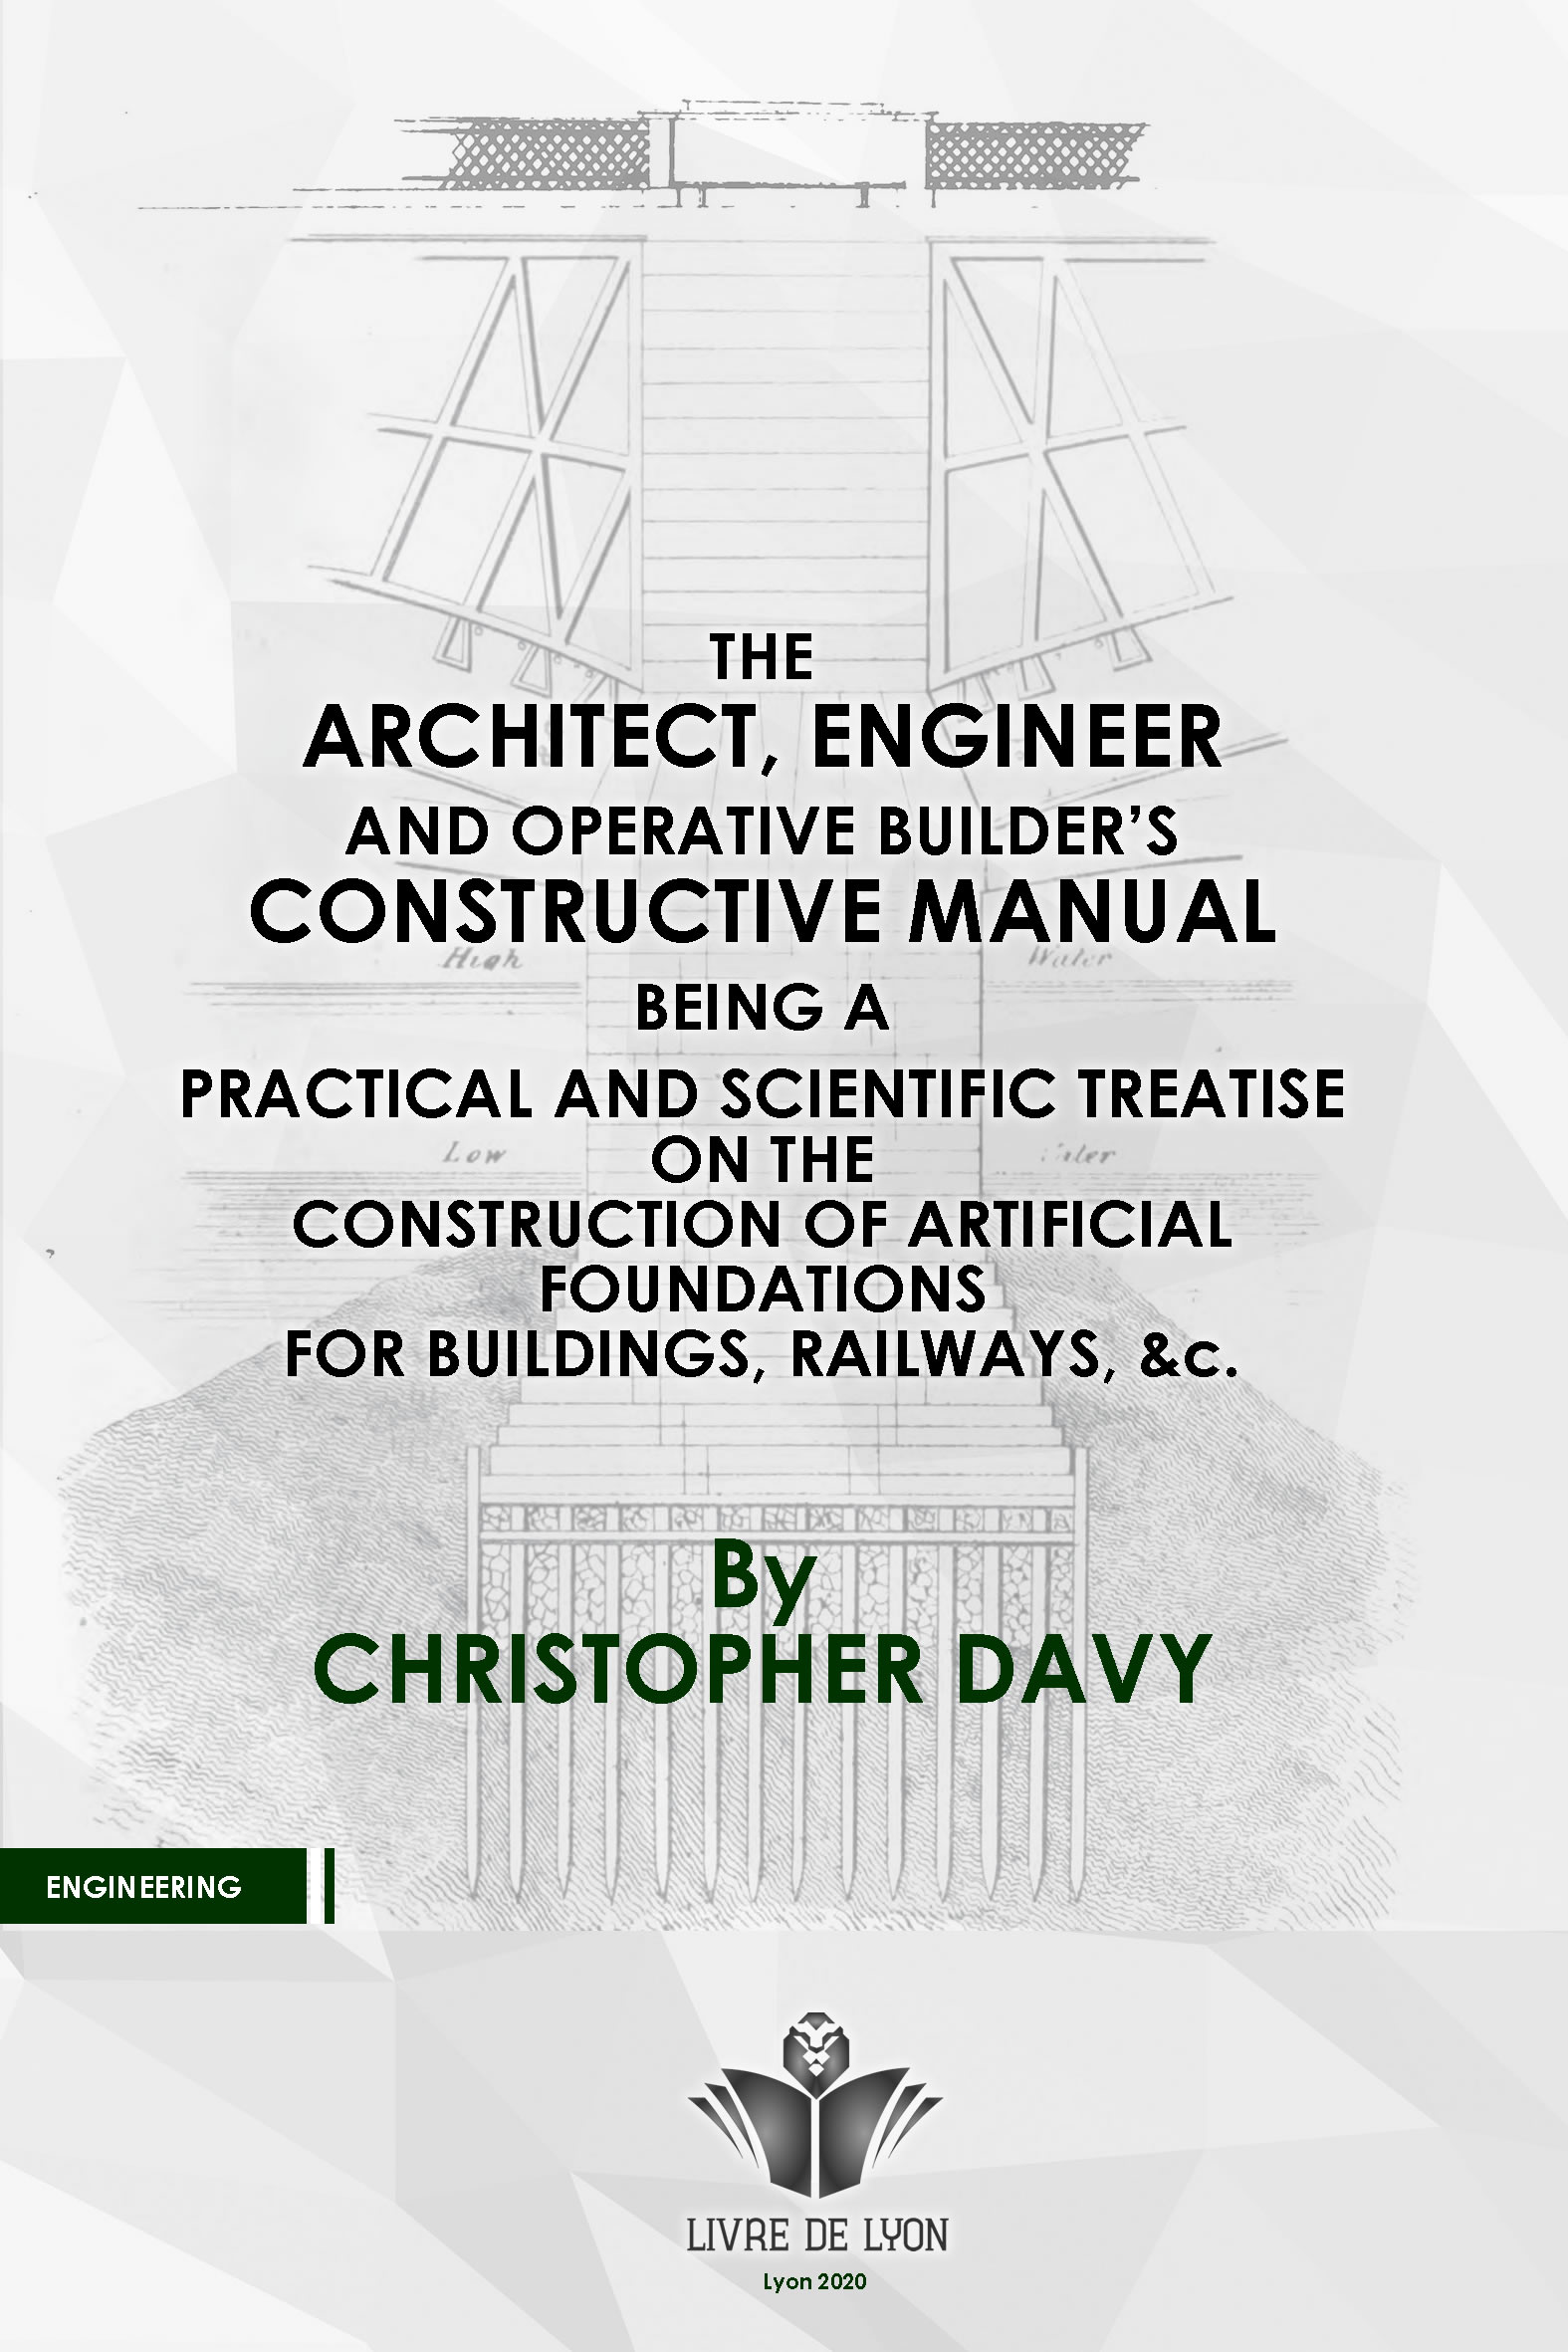 The architect, engineer, and operative builder's constructive manual; or, A practical and scientific